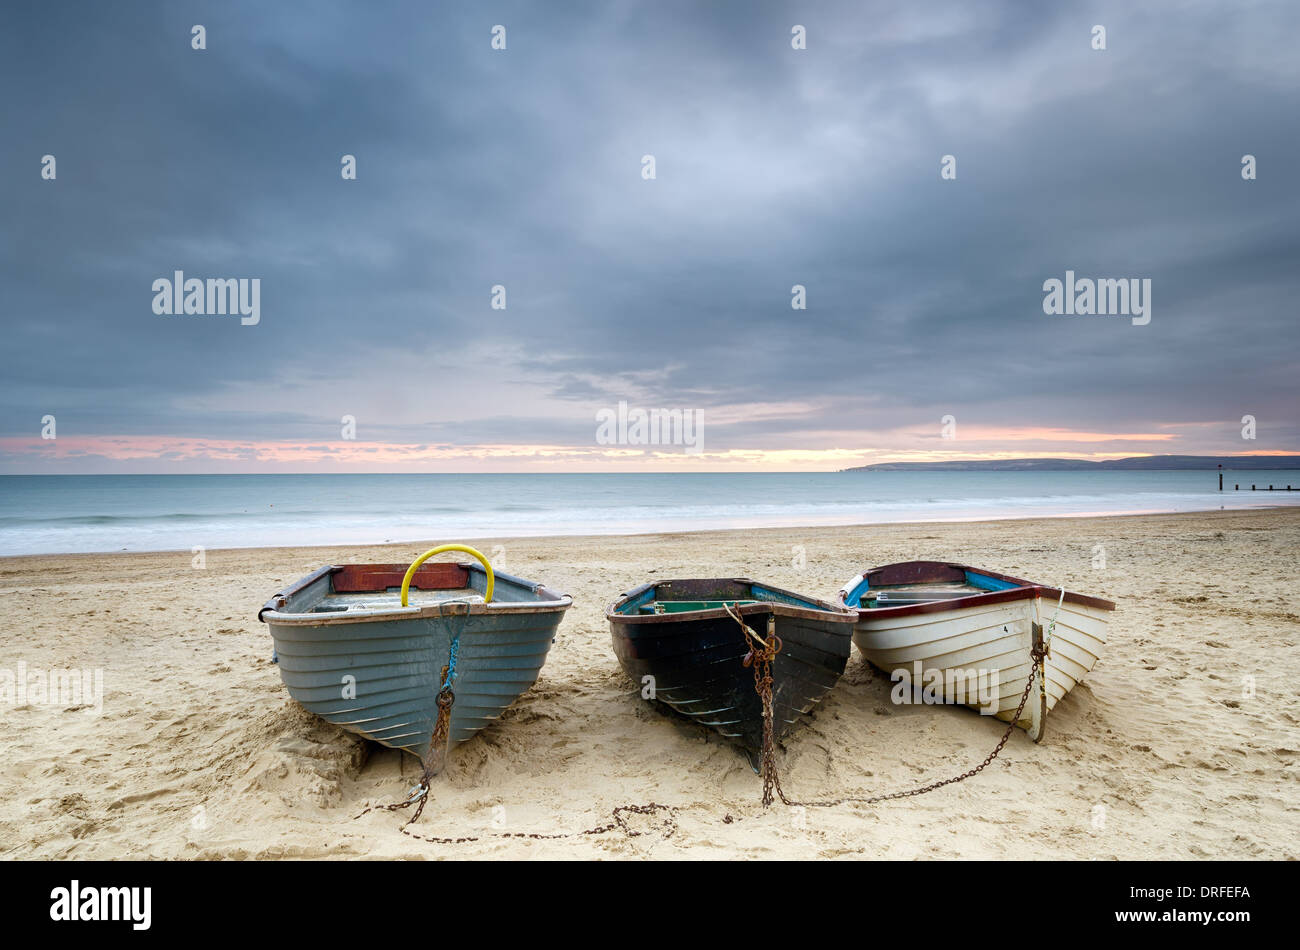 Boats at Durley chine on Bournemouth beach in Dorset - Stock Image